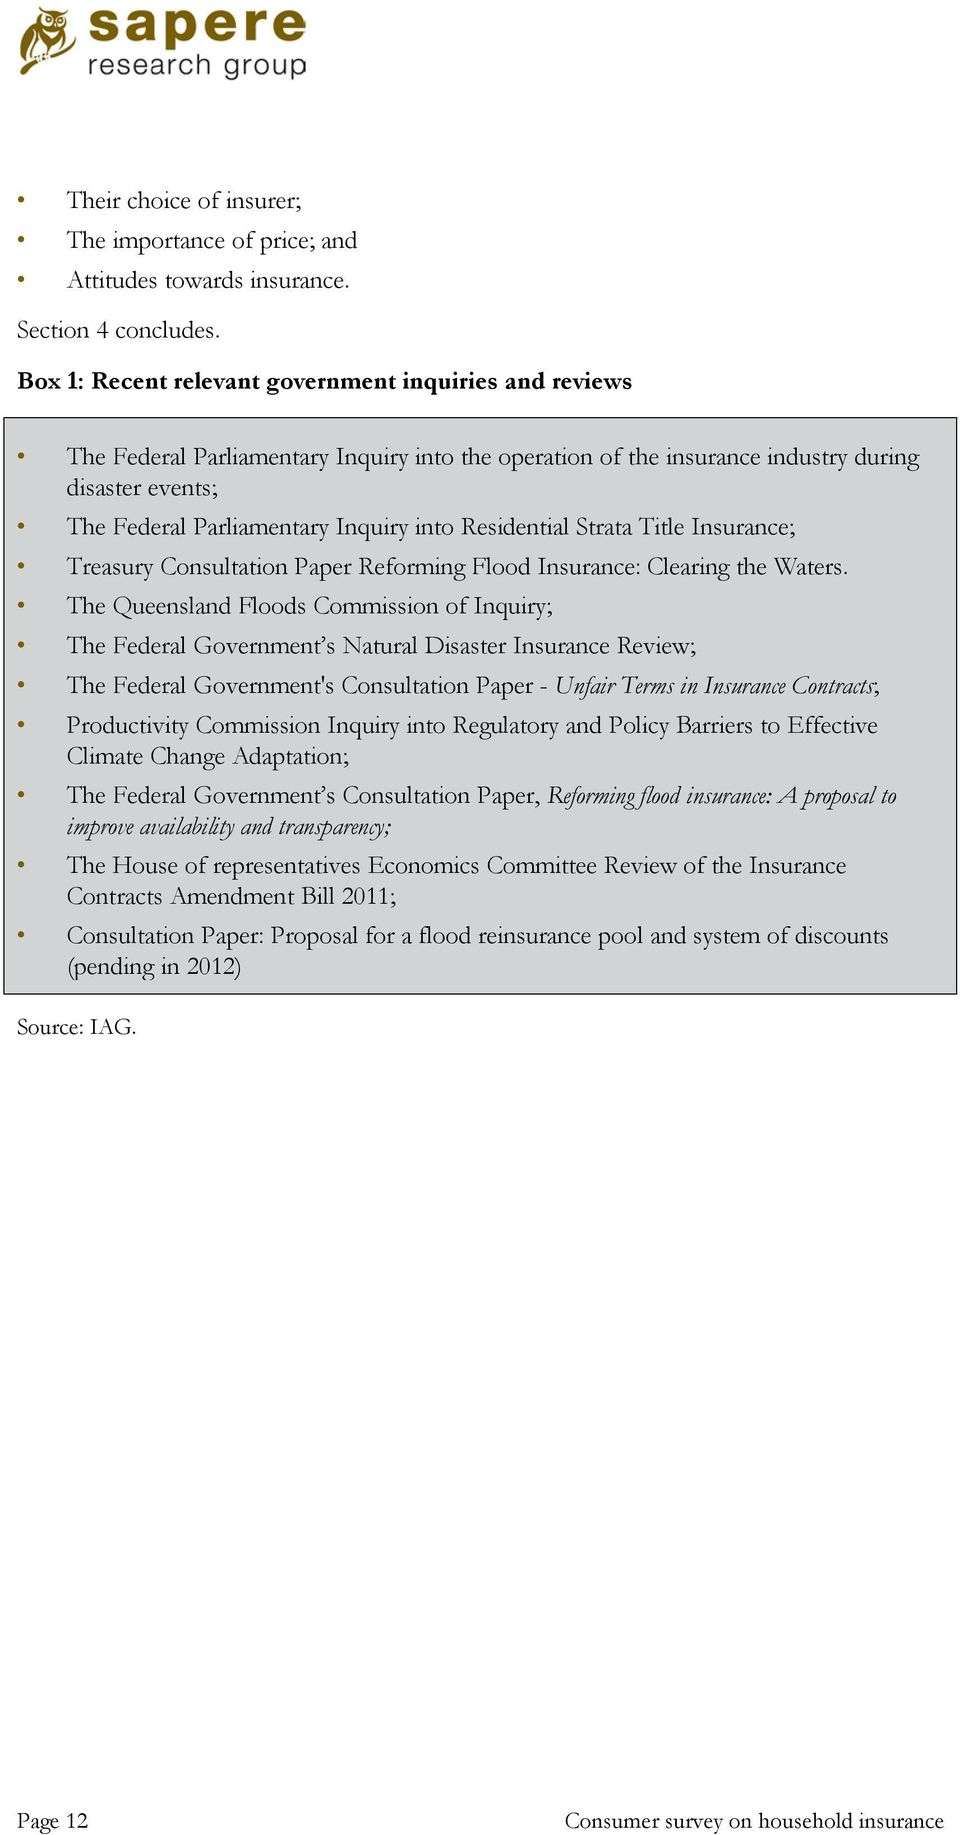 unfair terms in insurance contracts options paper